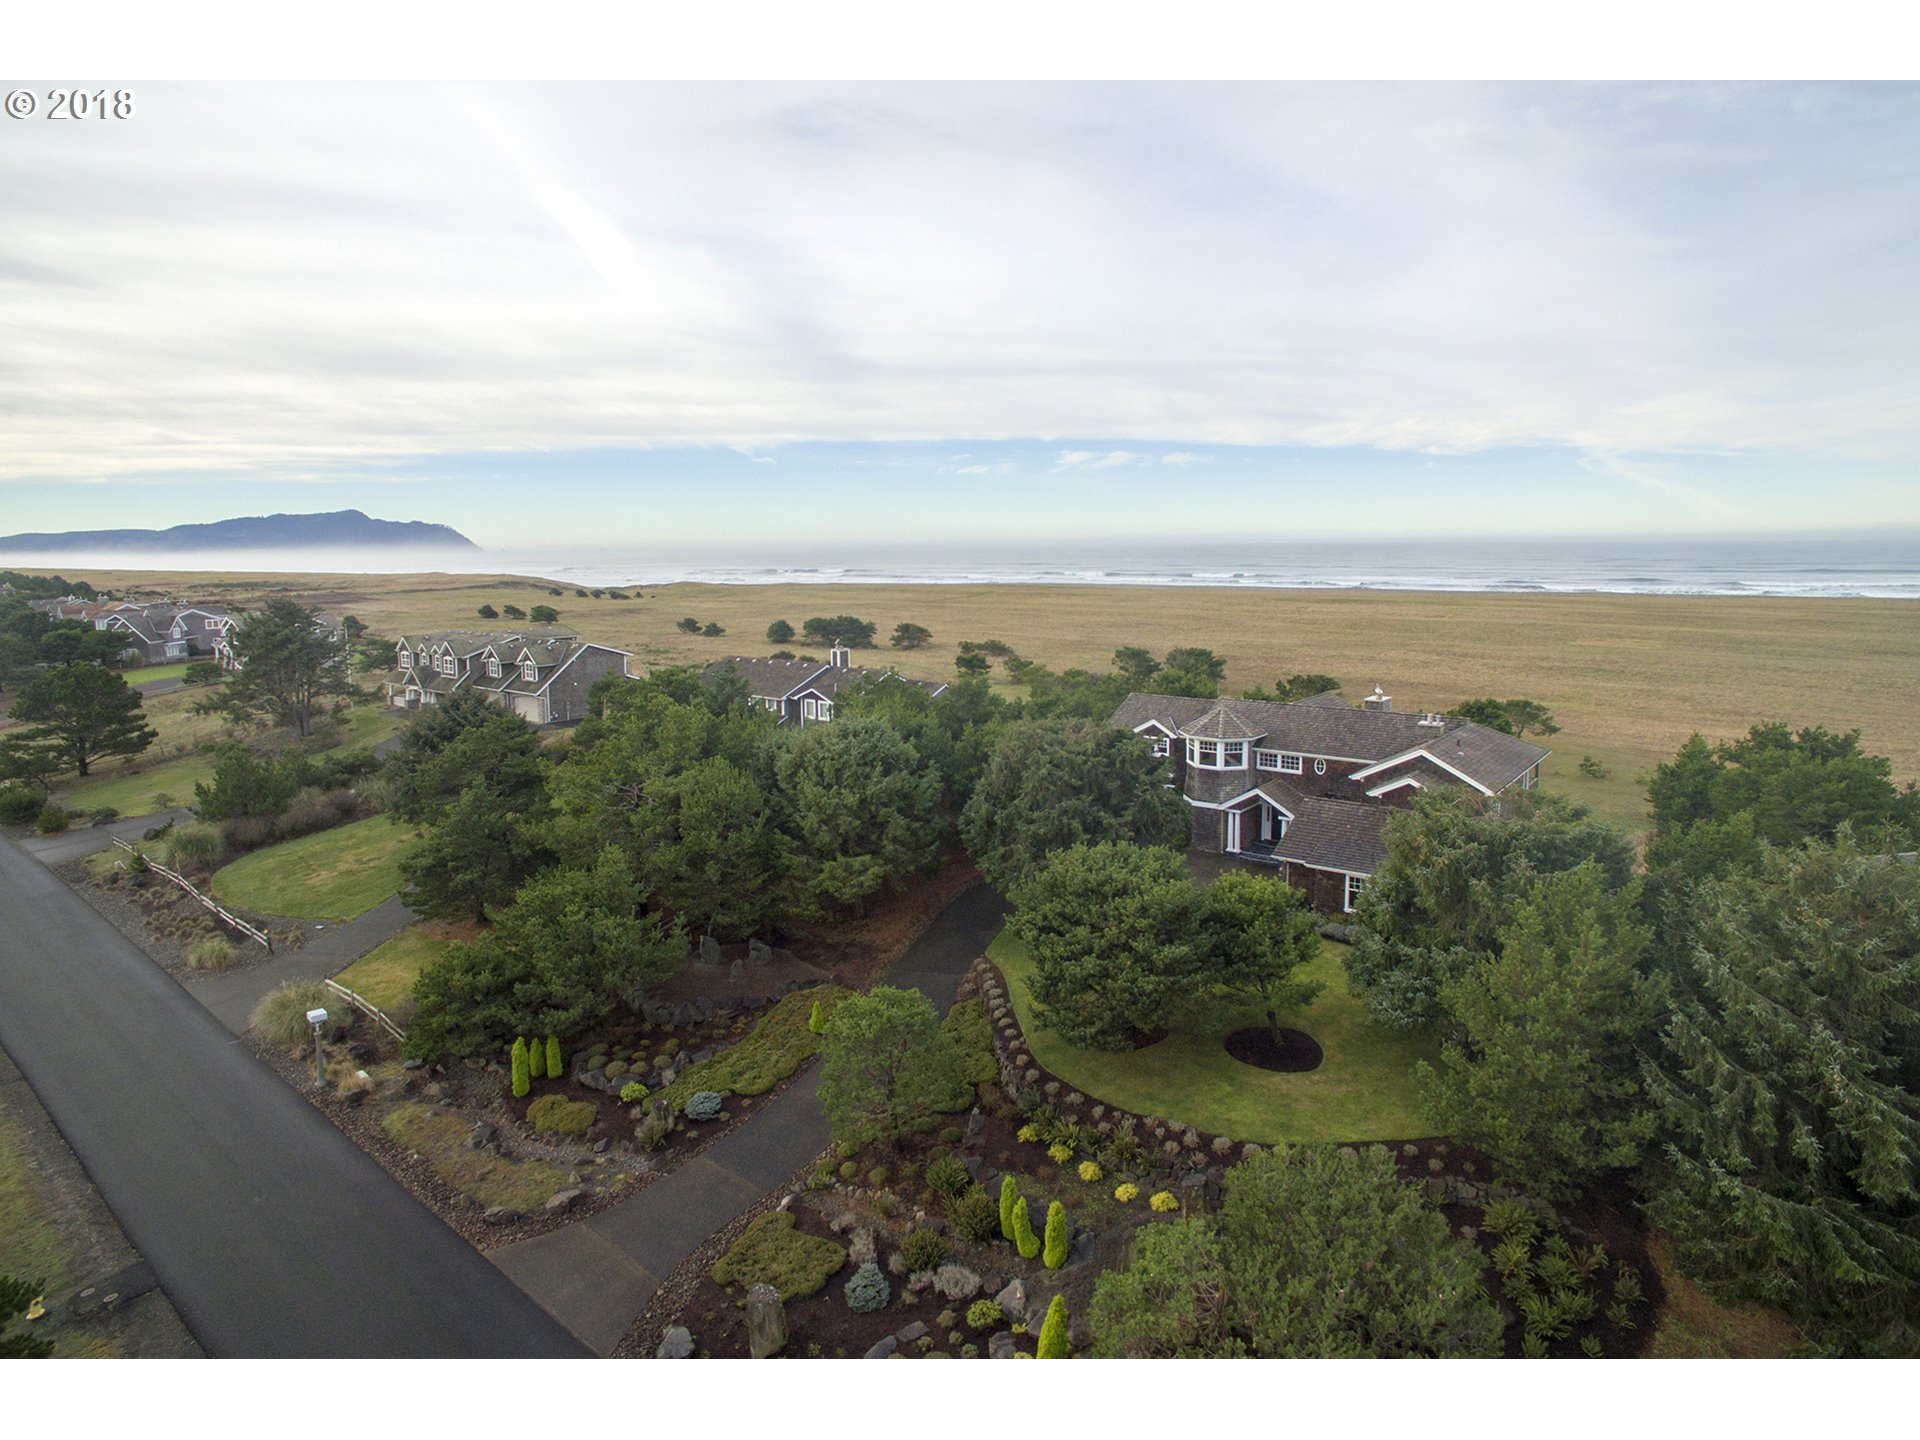 4386 sq. ft 3 bedrooms 3 bathrooms  House For Sale, Gearhart, OR